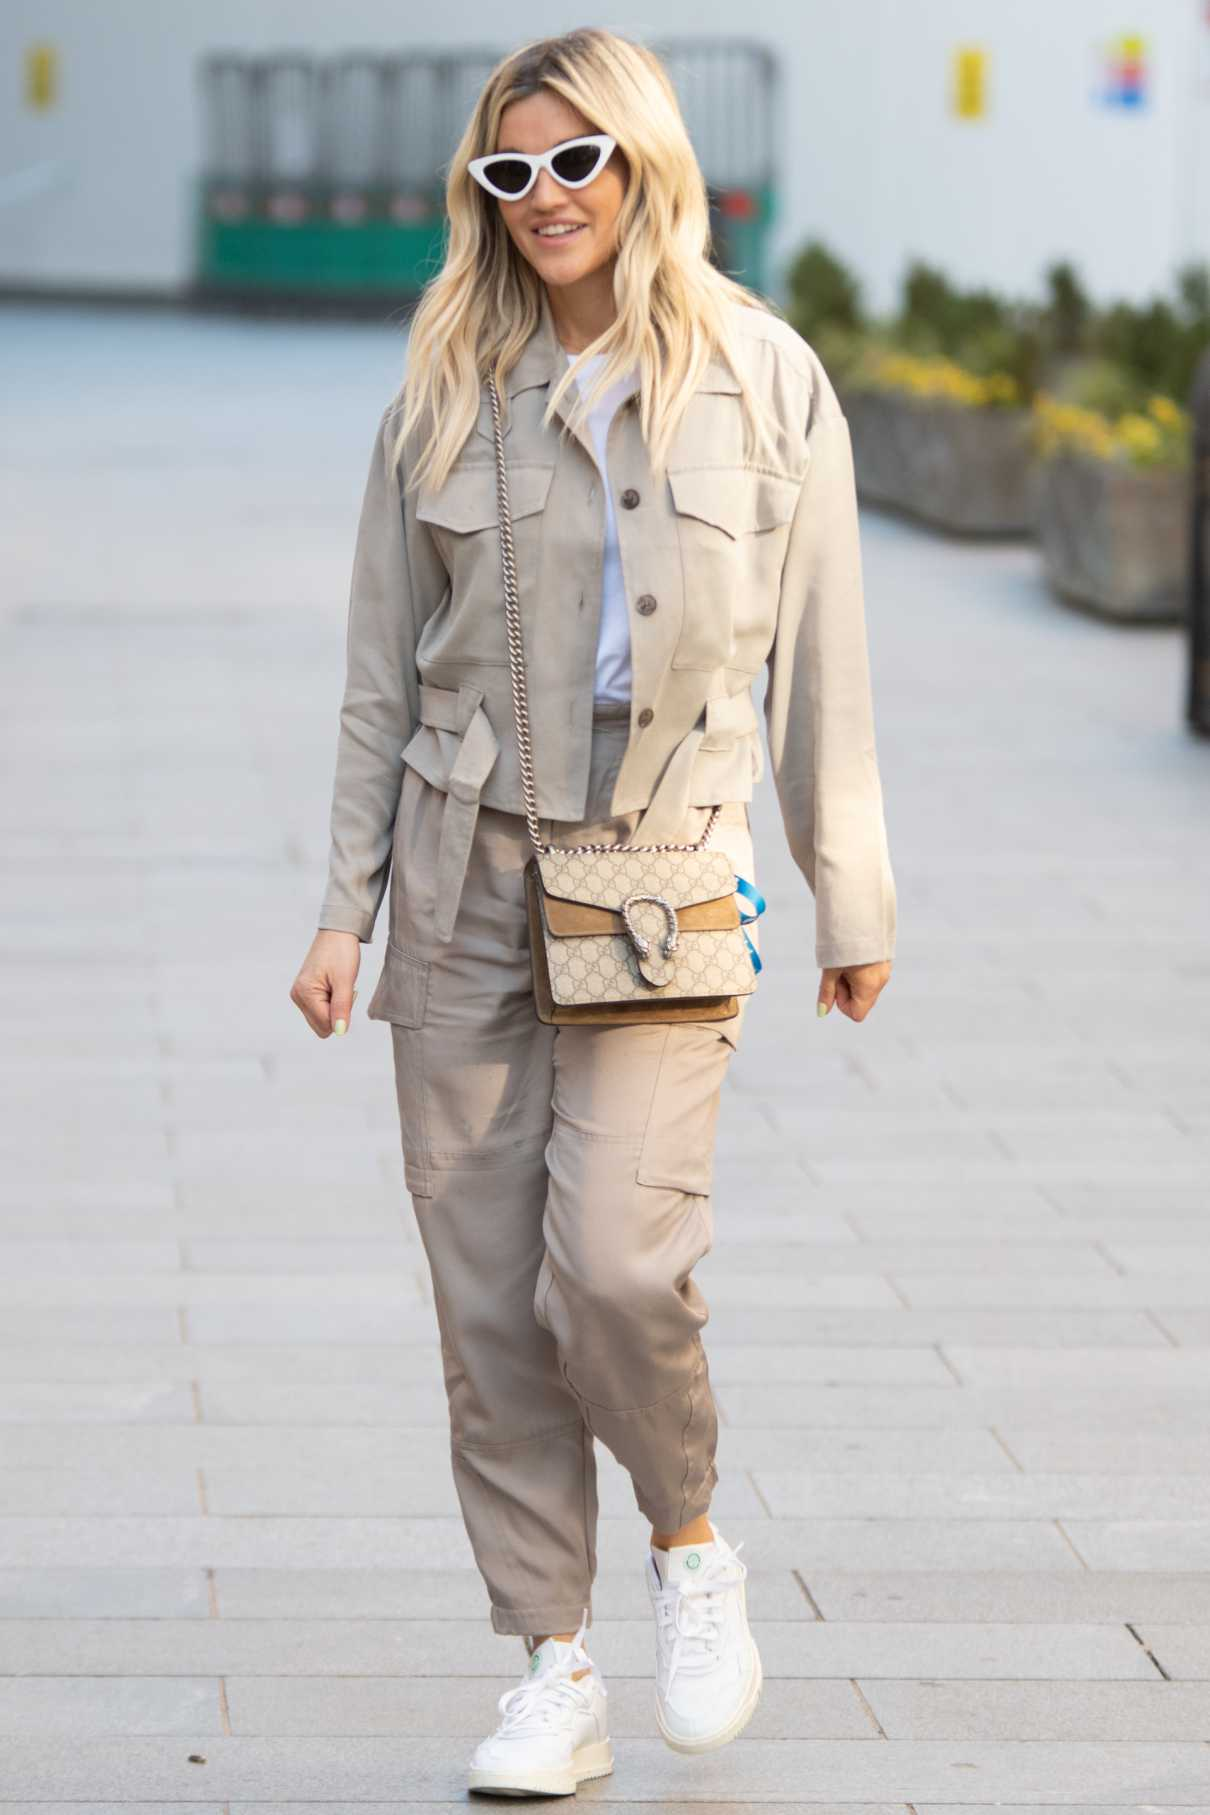 Ashley Roberts in a Beige French Connection Jacket